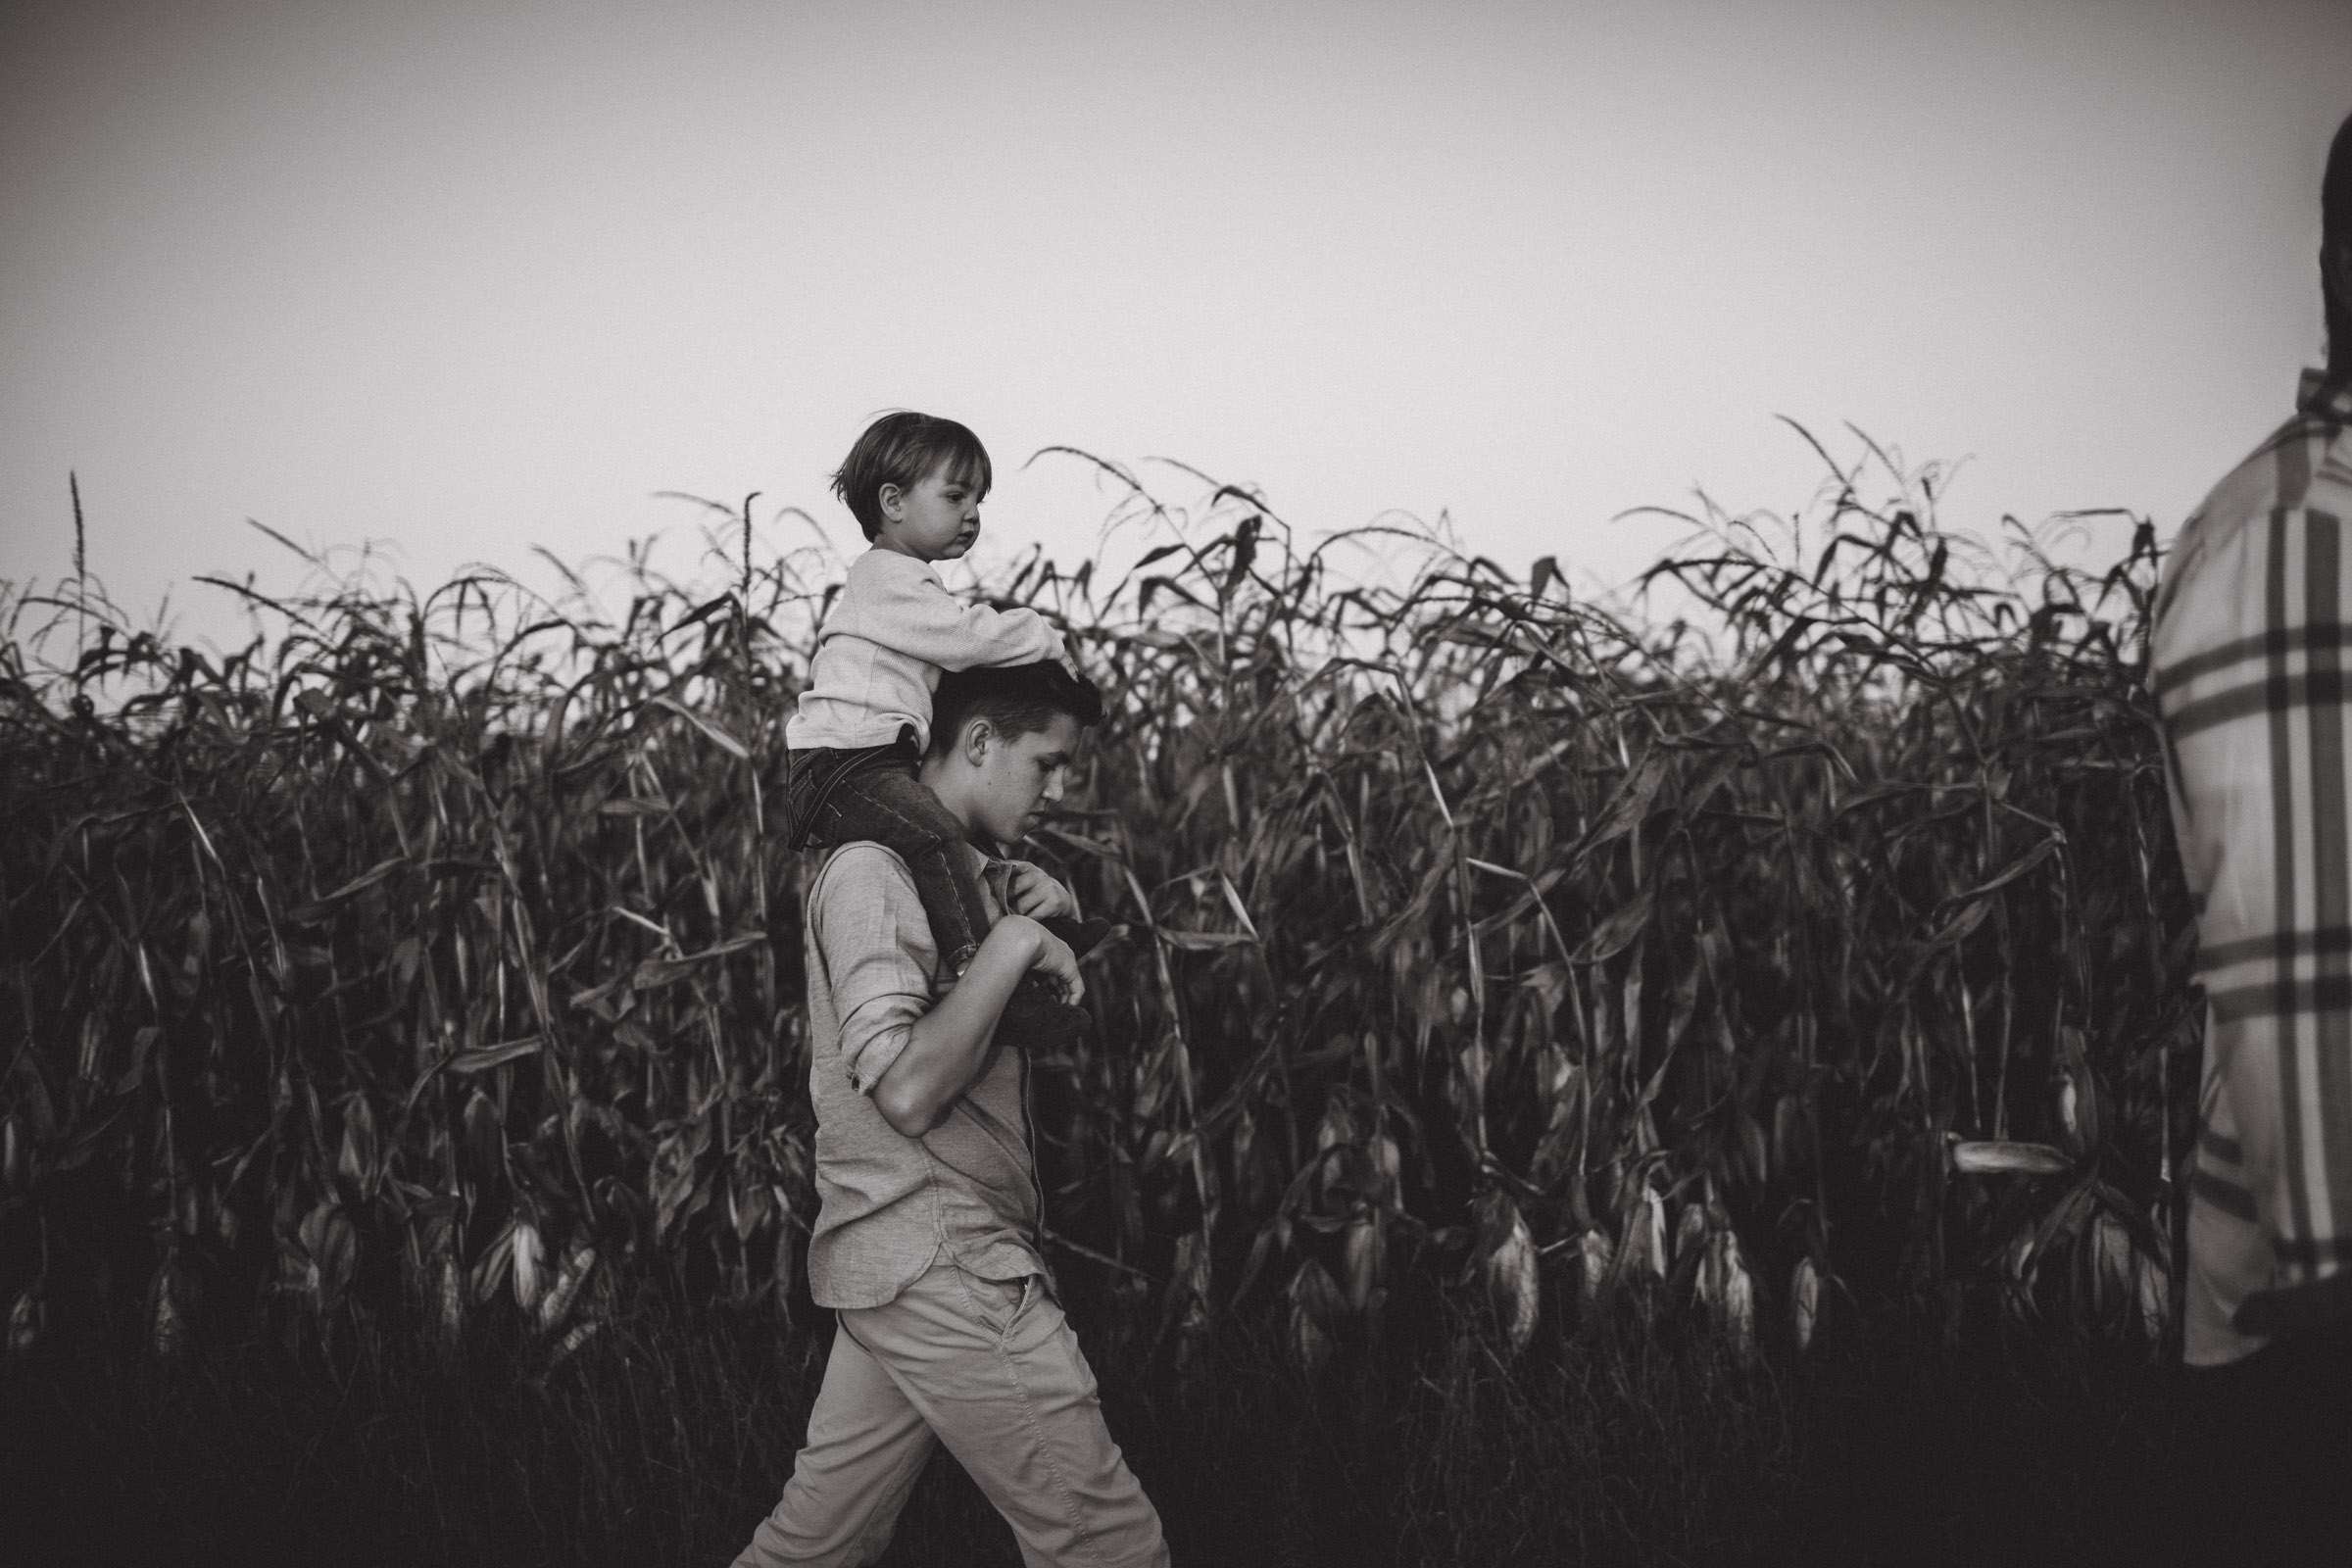 older brother carrying younger brother on shoulders beside cornfields